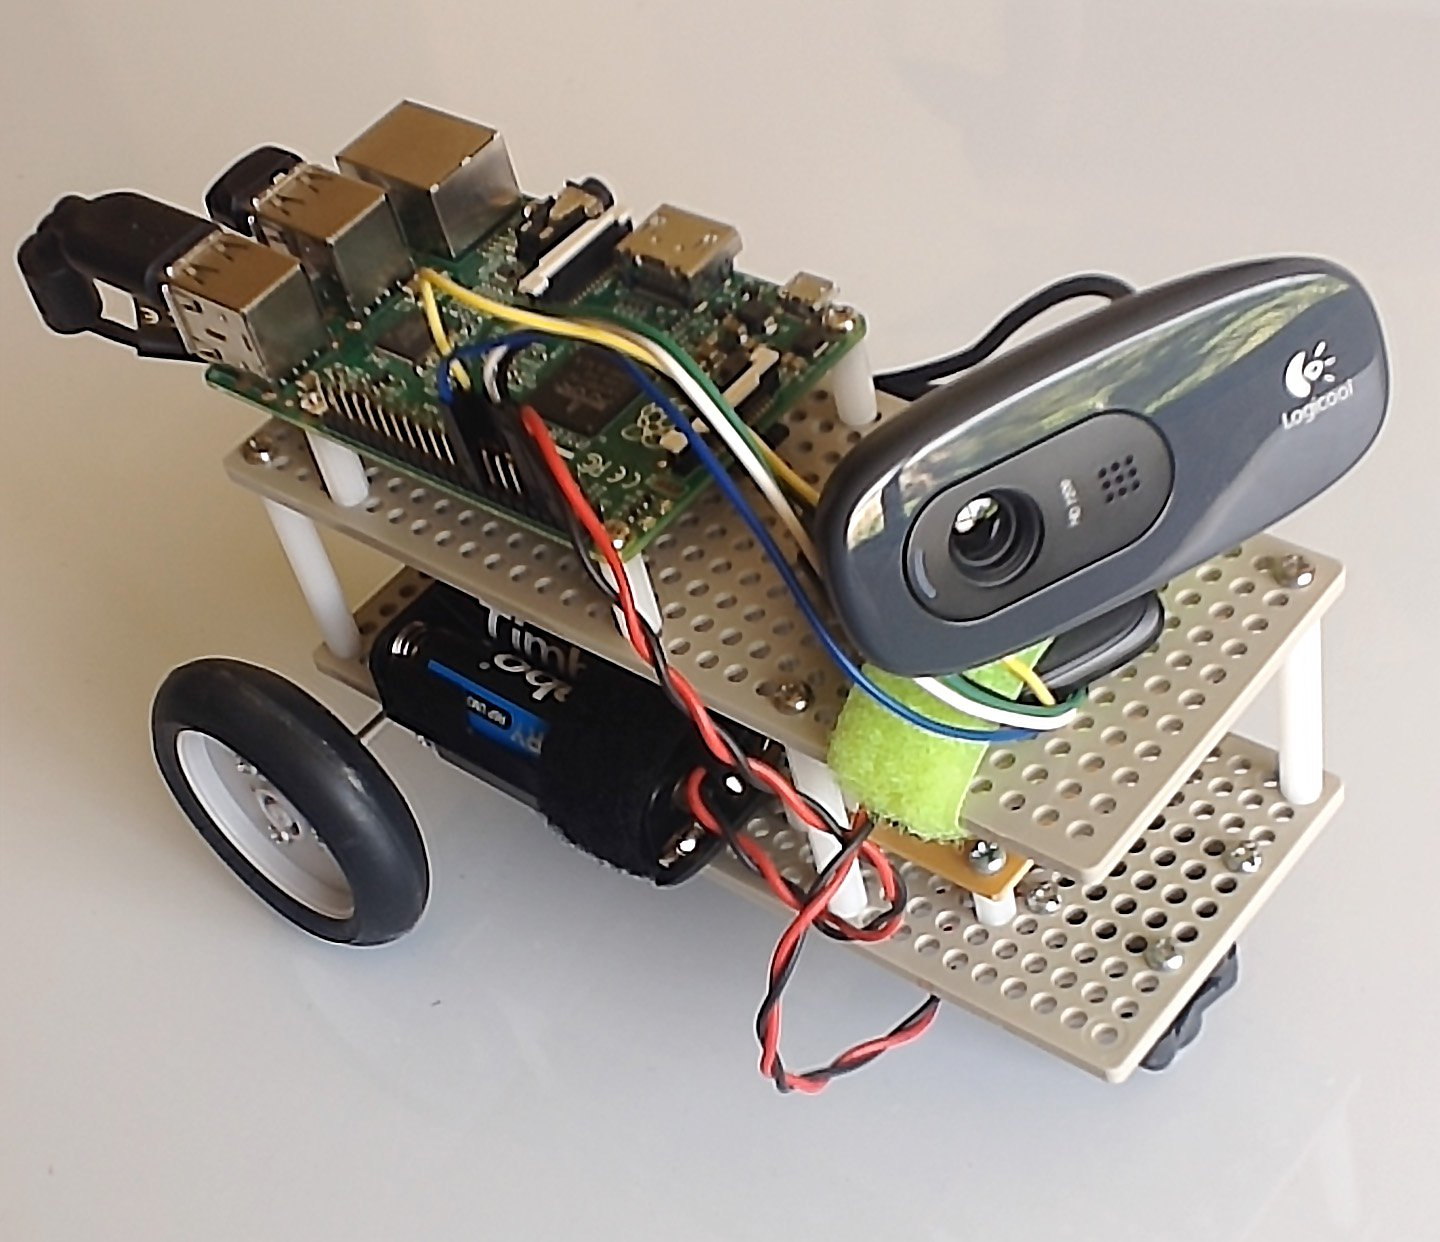 How To Build A Raspberry Pi Rover Robot With Smartphone Control Telephone Controlled Motor Page 7 Free Microcontroller Projects Maker Pro